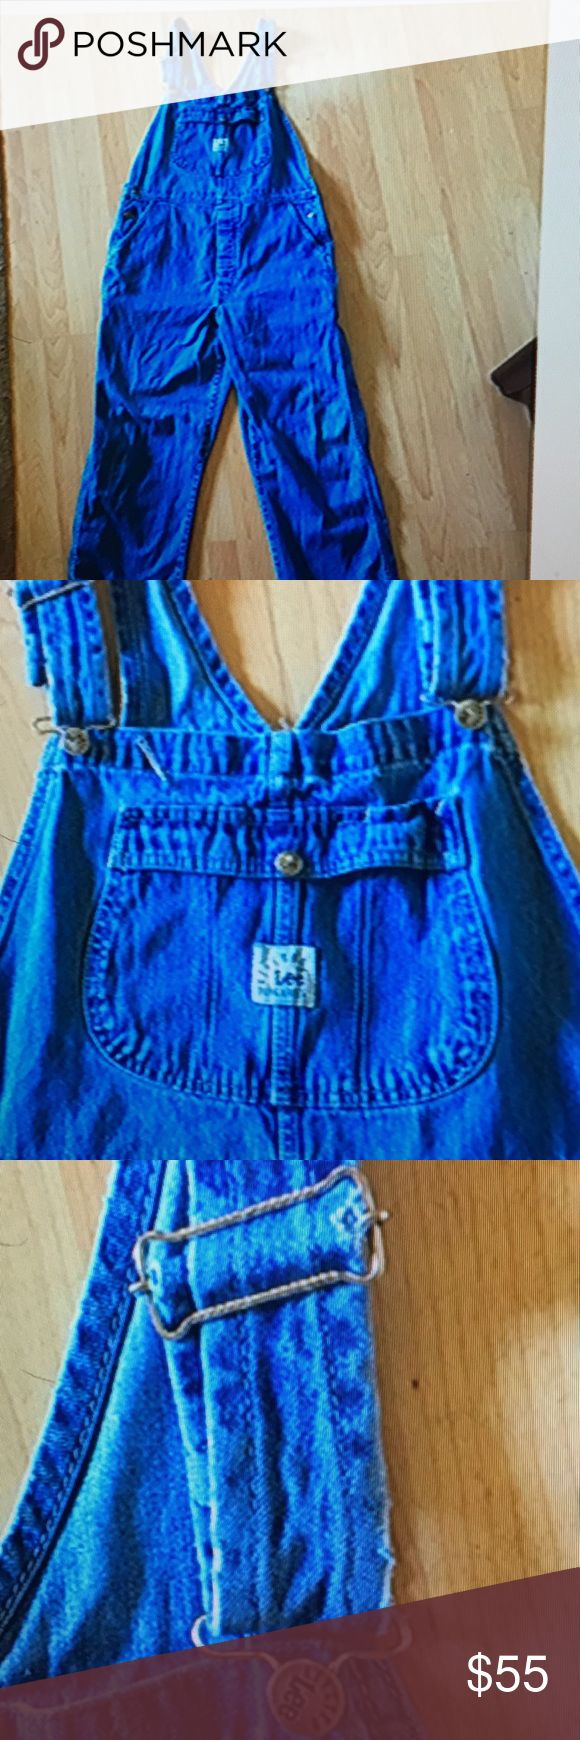 Vintage Lee Dungarees Rivited Overalls Size Xl Overalls. Missing one rivers on the side. In excellent condition these vintage Lee overalls are so comfy.  Very roomy 29 at the inseam, 19' across from hip to hip, 51' top to bottom. No stains, or rips . Riveted Lee Dungarees Jeans Overalls